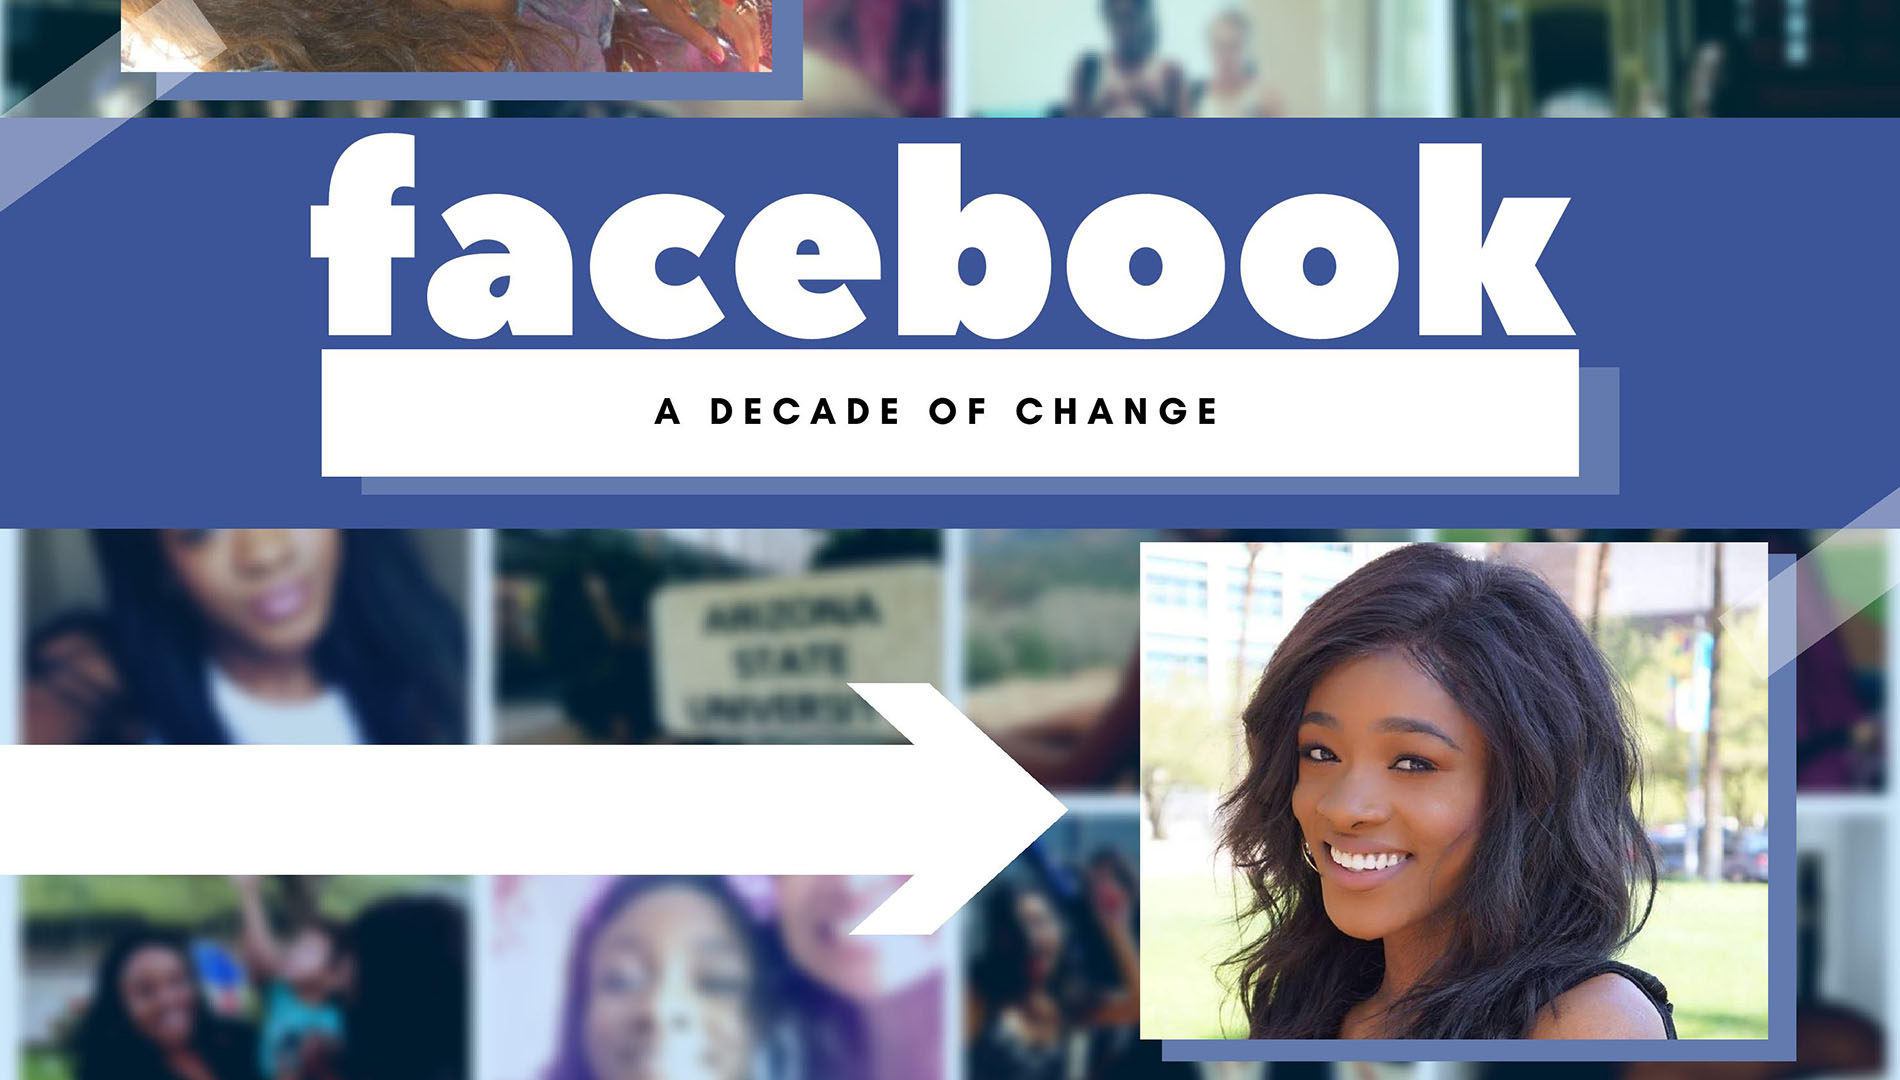 My data diary: A decade of changes on Facebook and in life